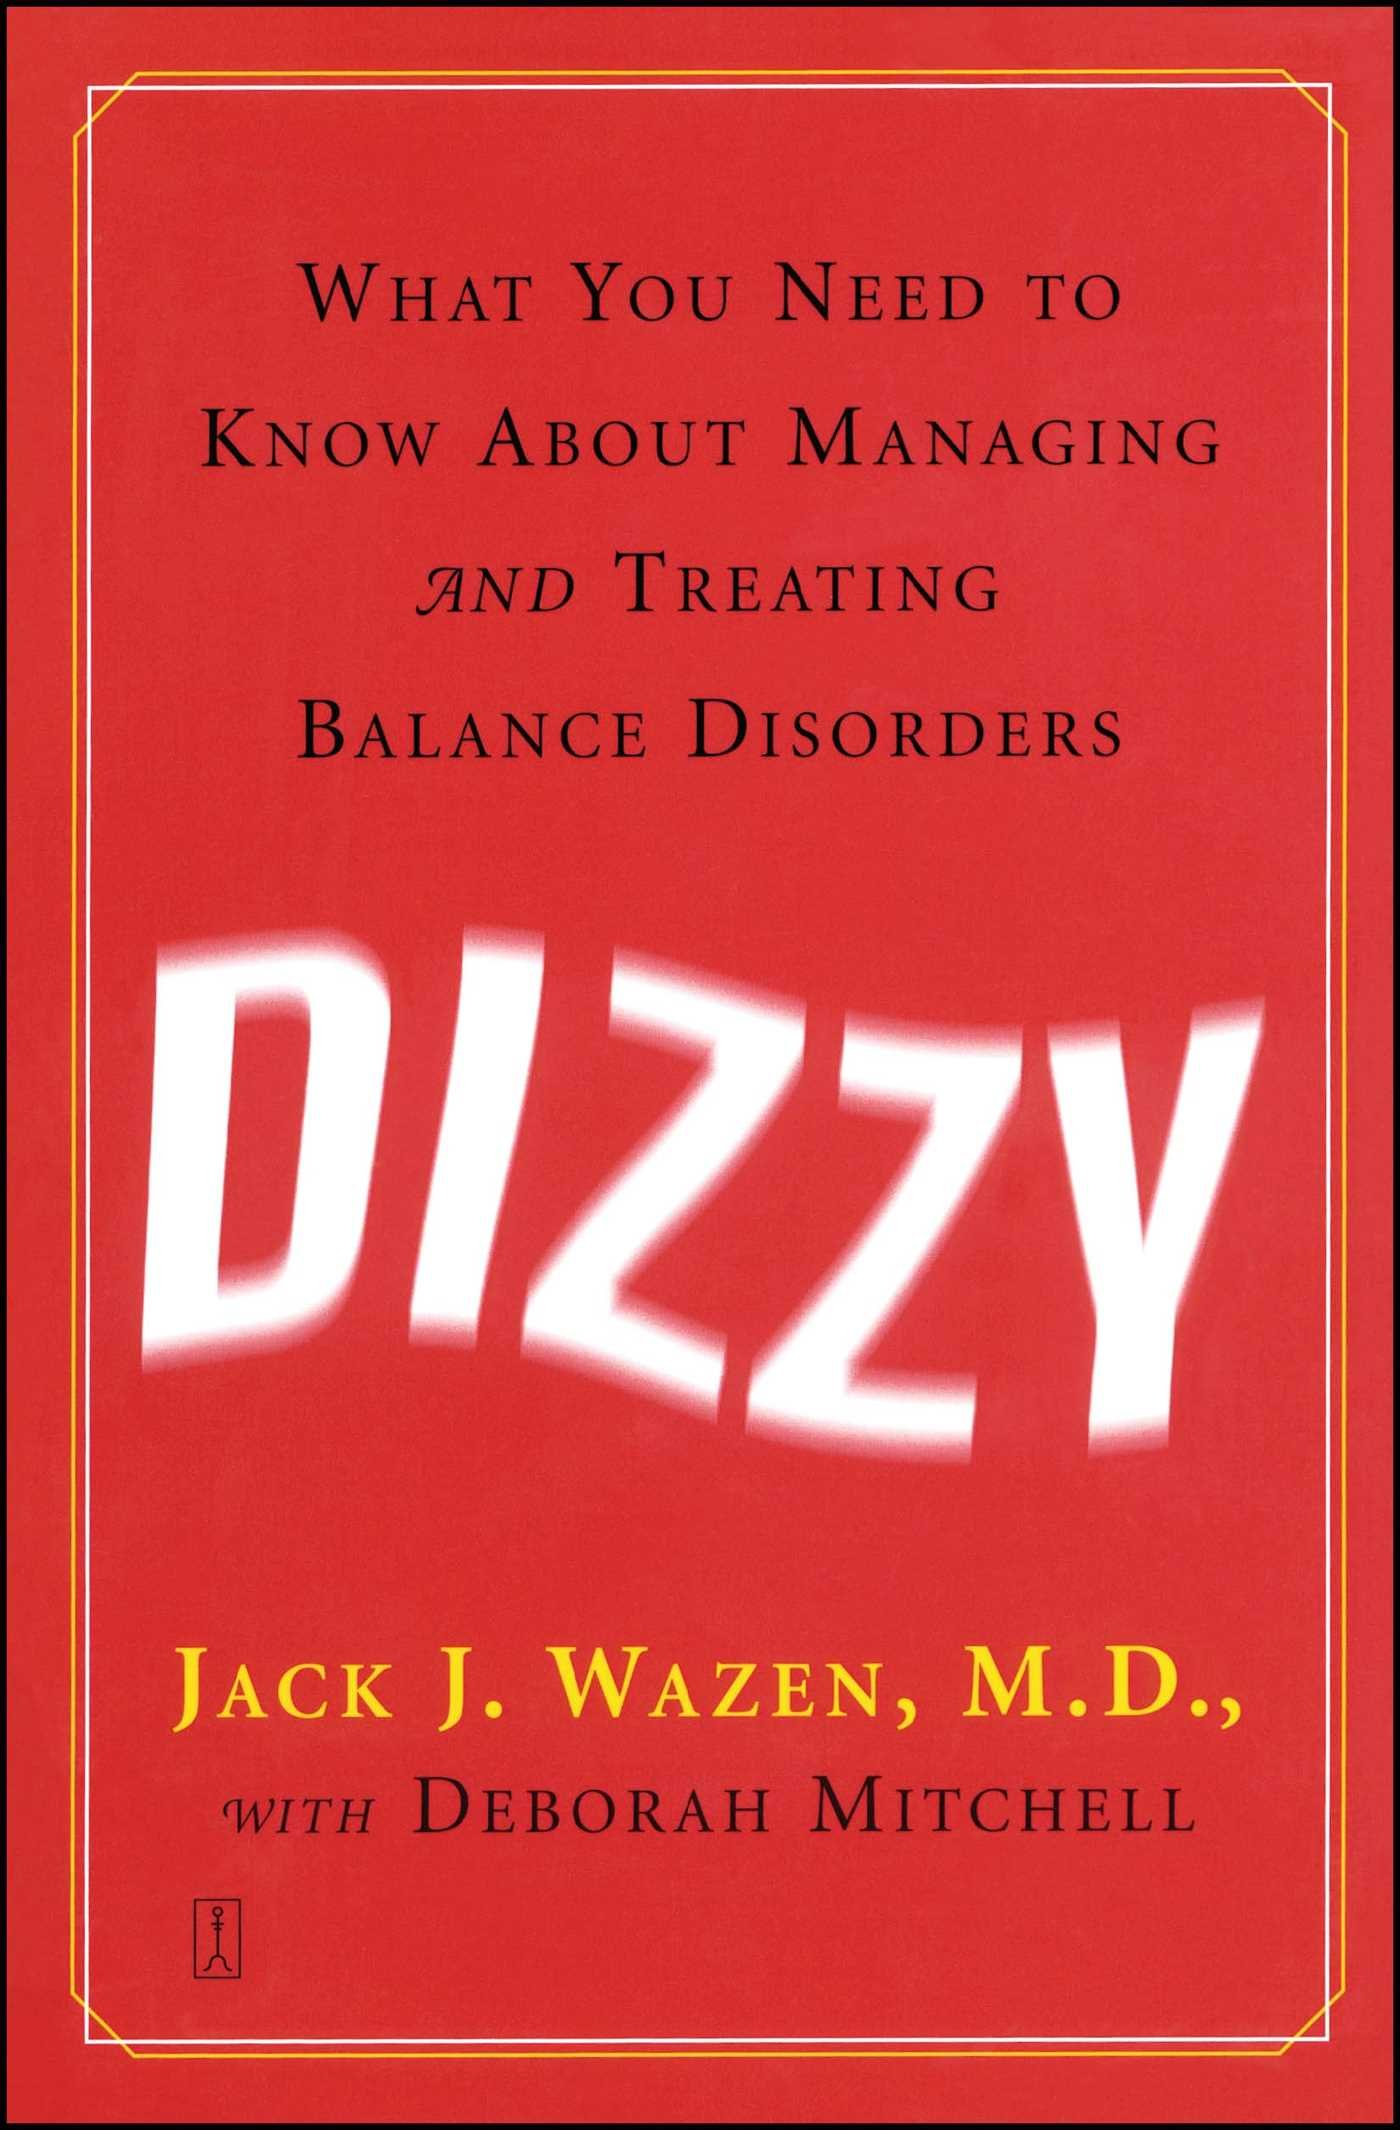 Dizzy Managing Treating Balance Disorders product image